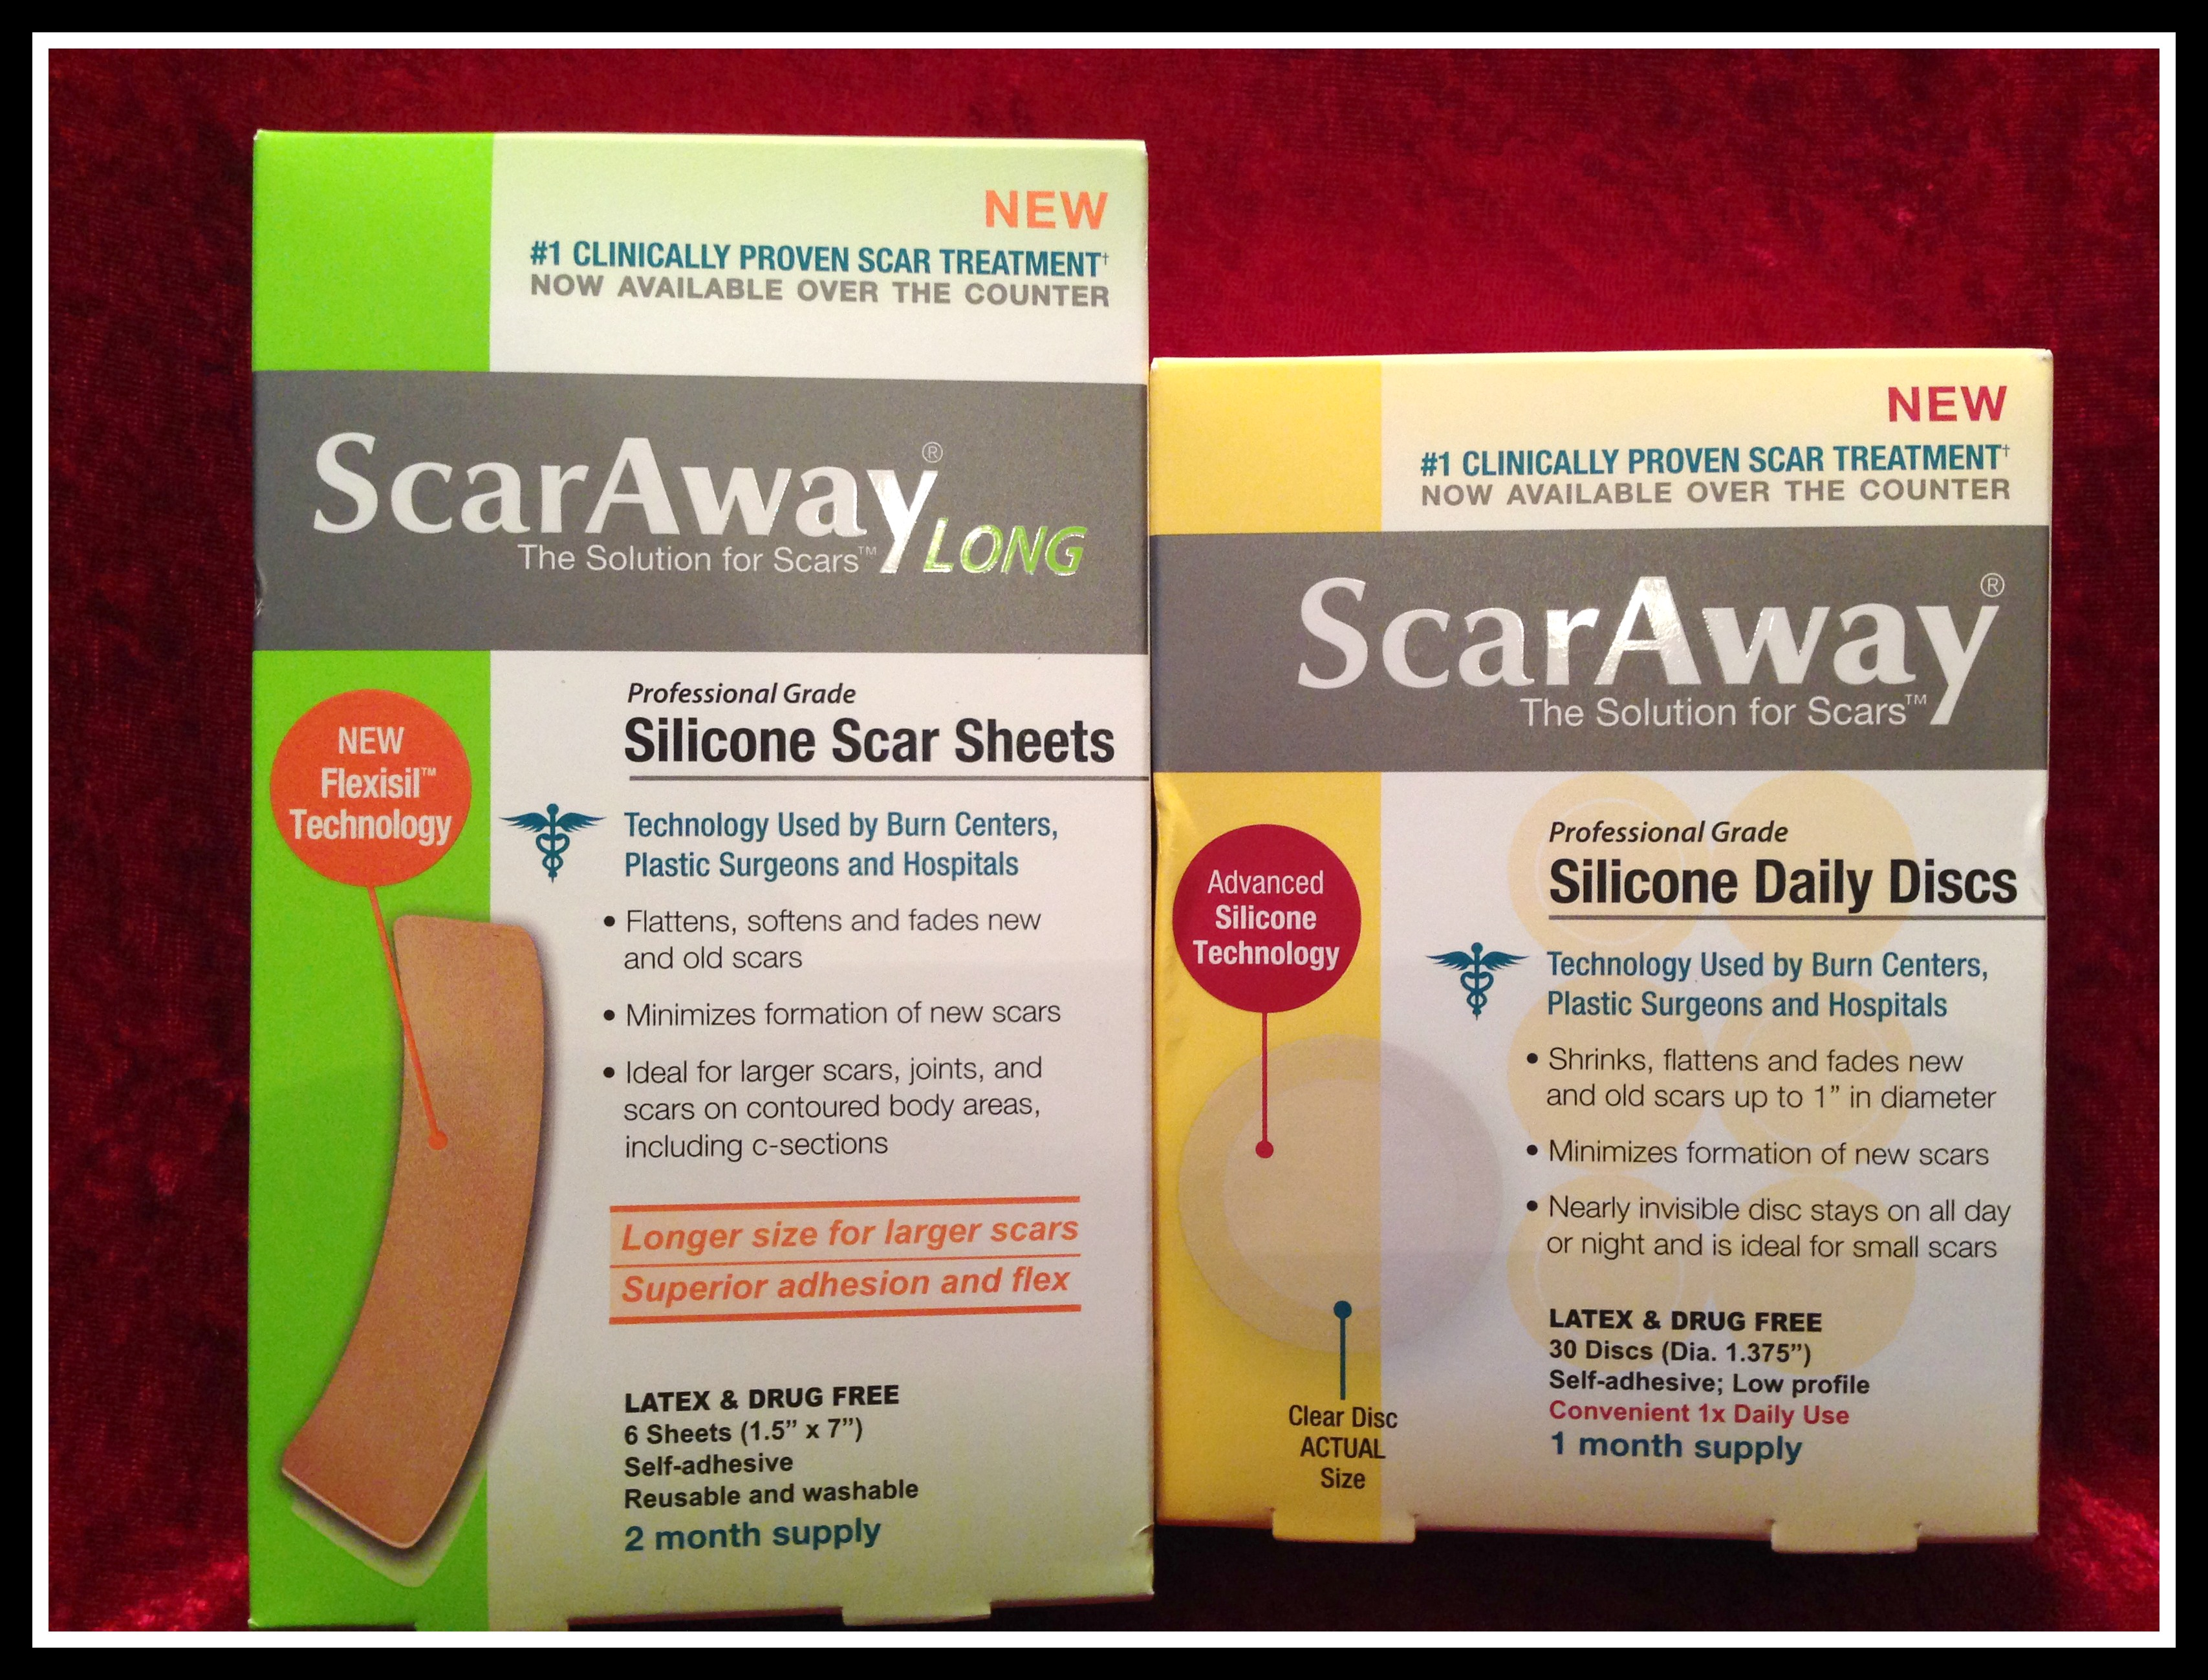 scar away silicone sheets instructions